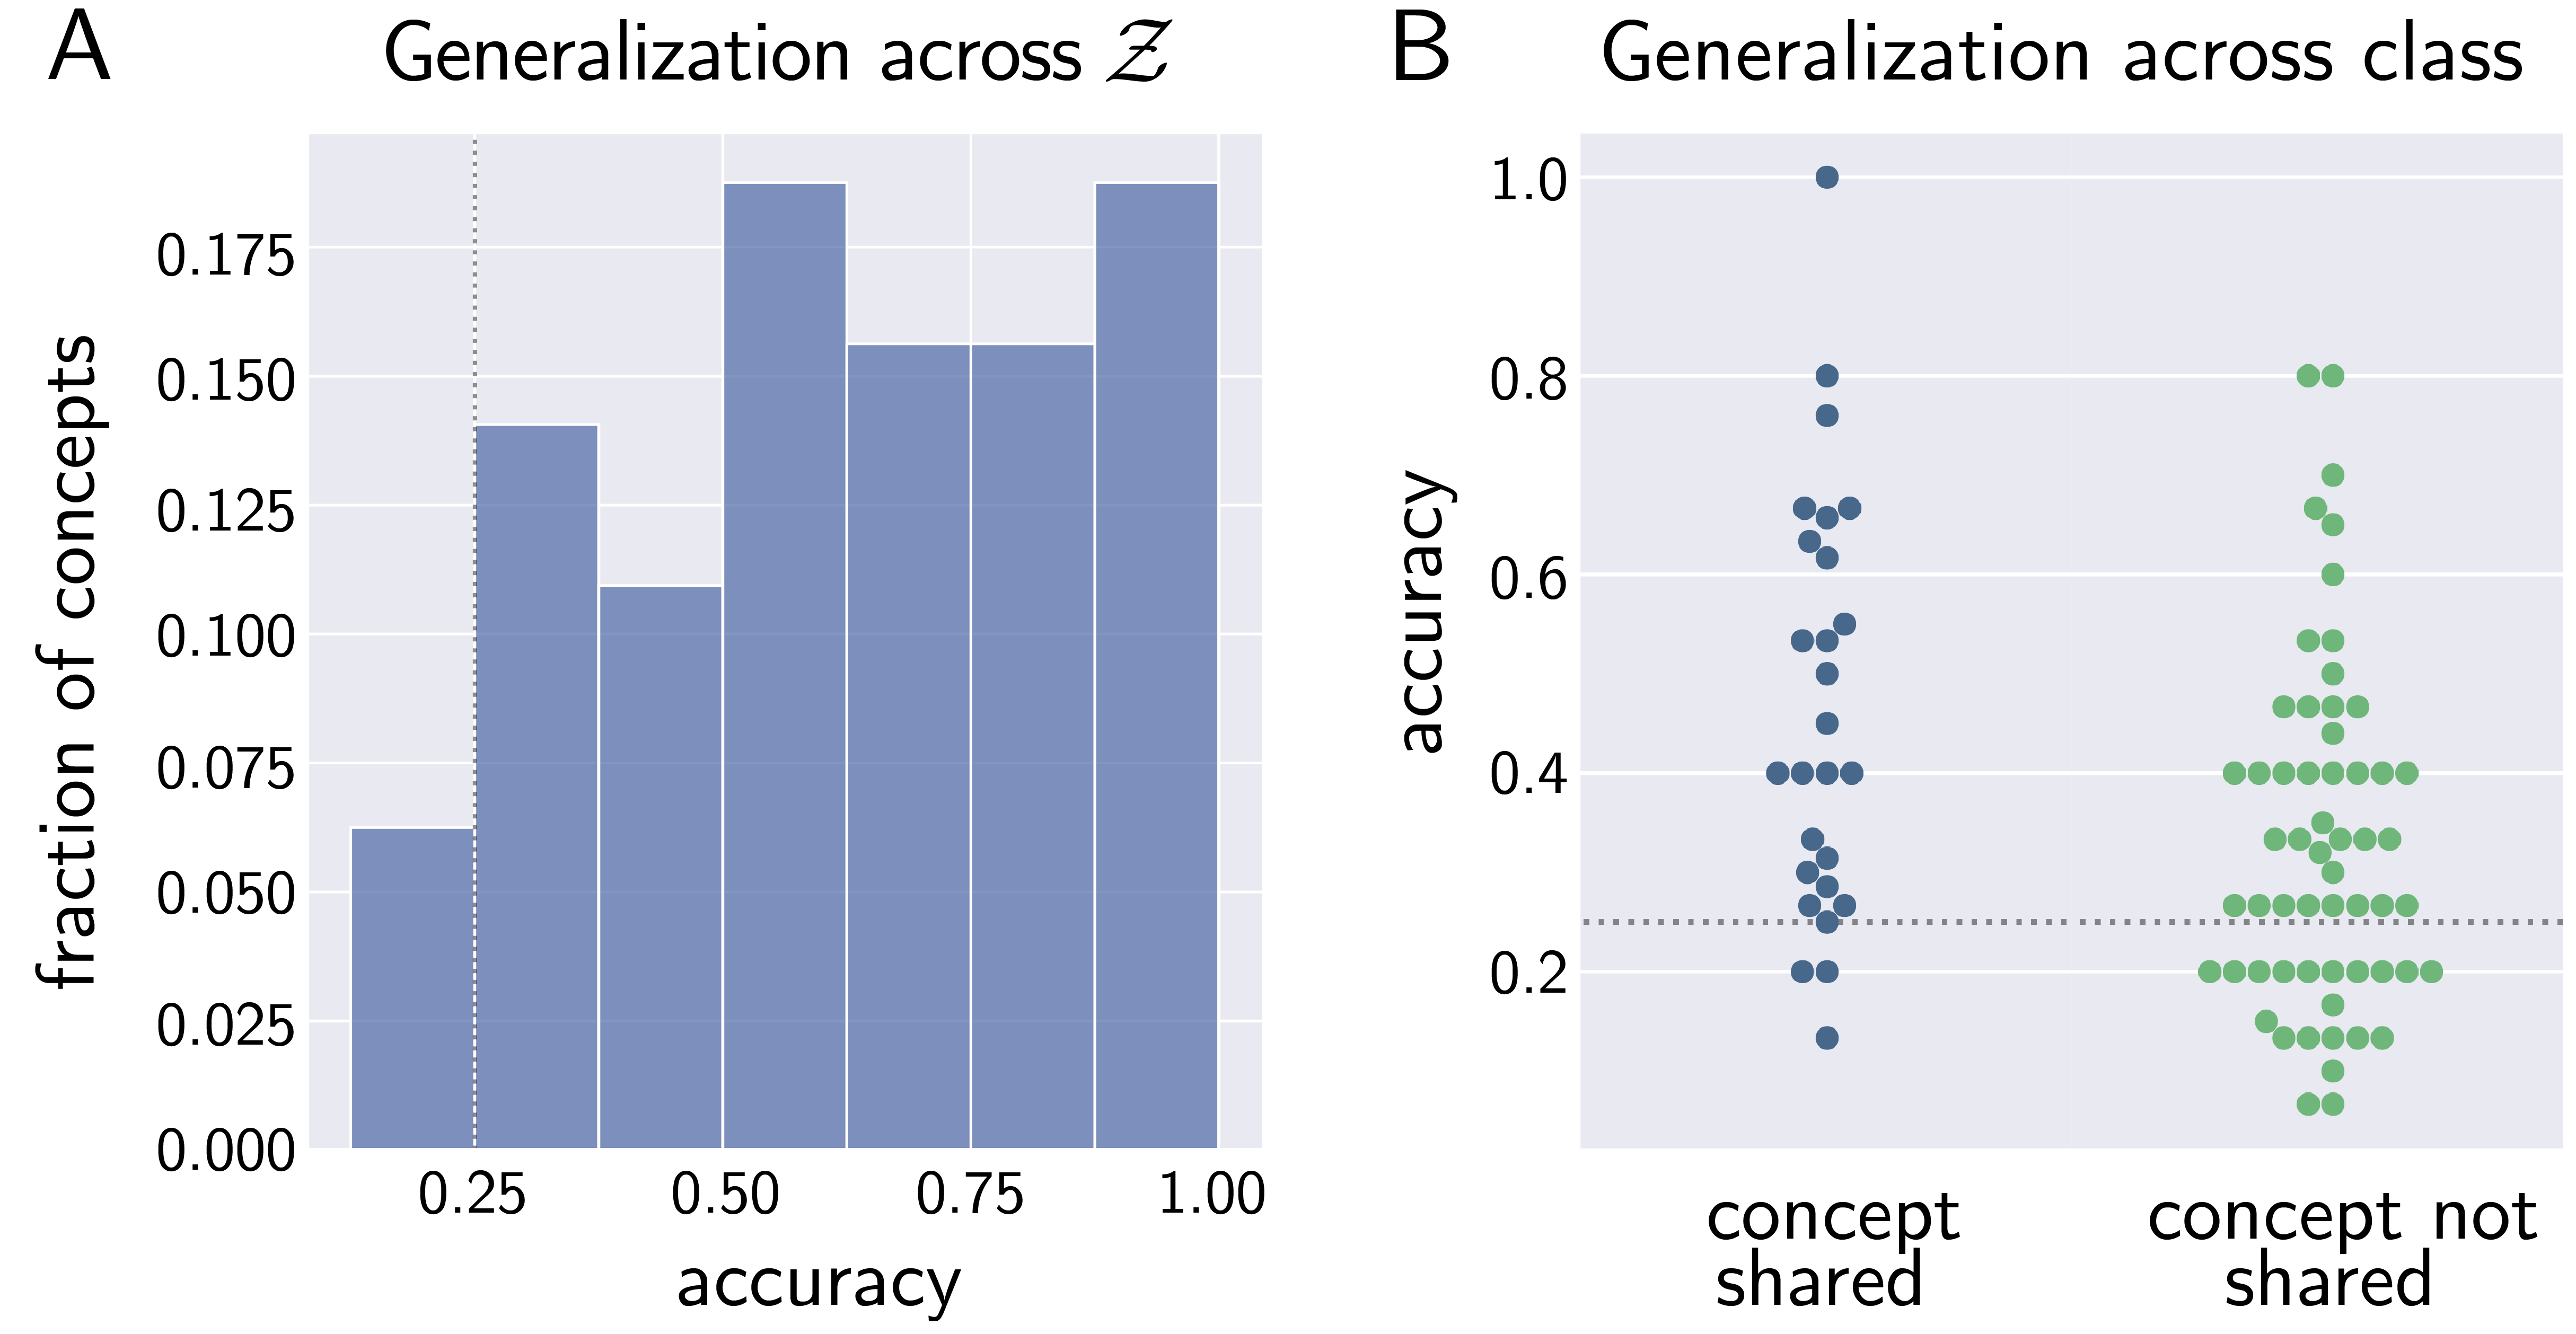 (a) Histogram from